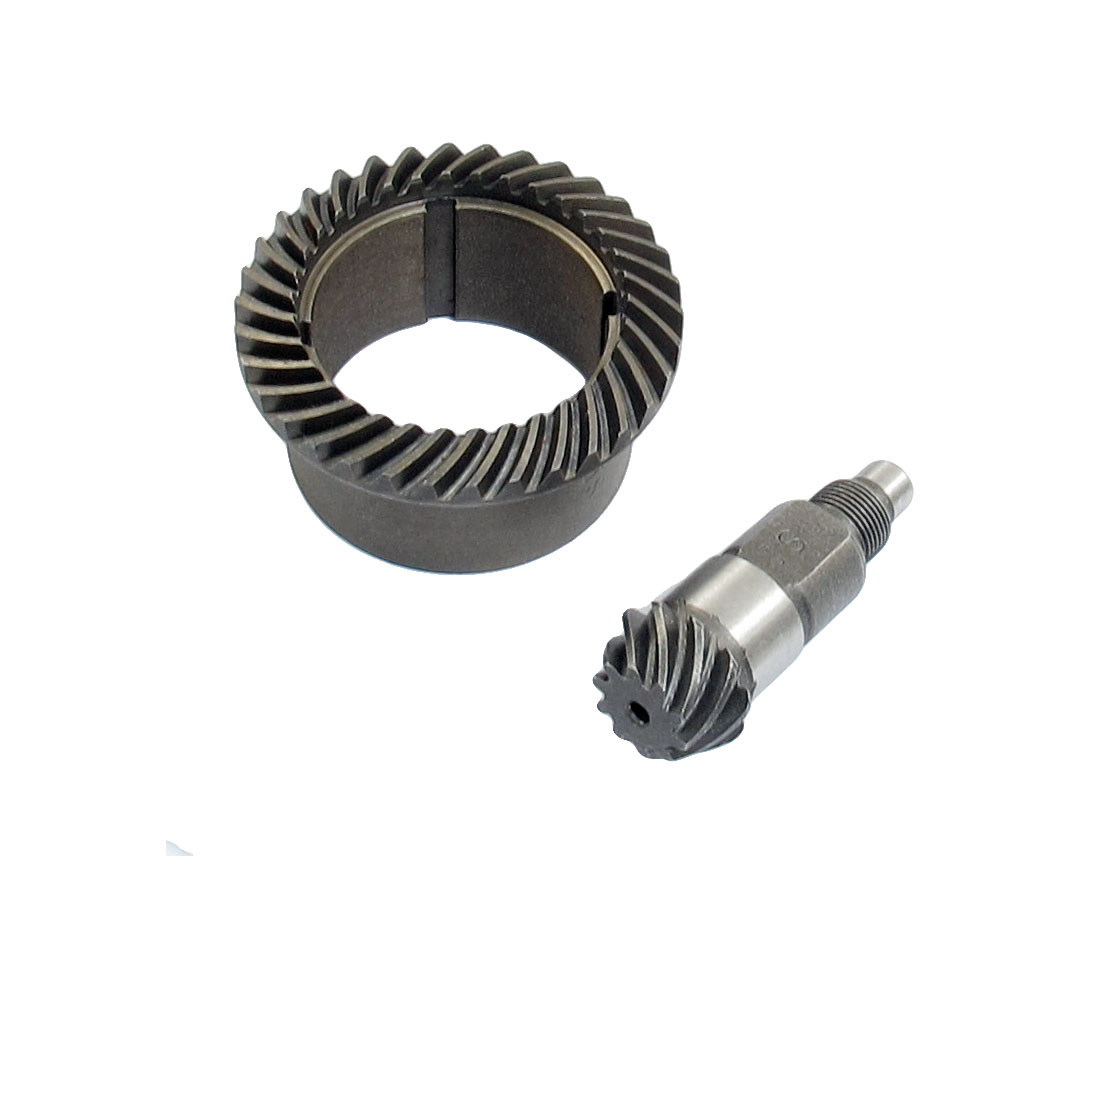 Repair Replacement Angle Grinder Spiral Bevel Gear Set for Bosch